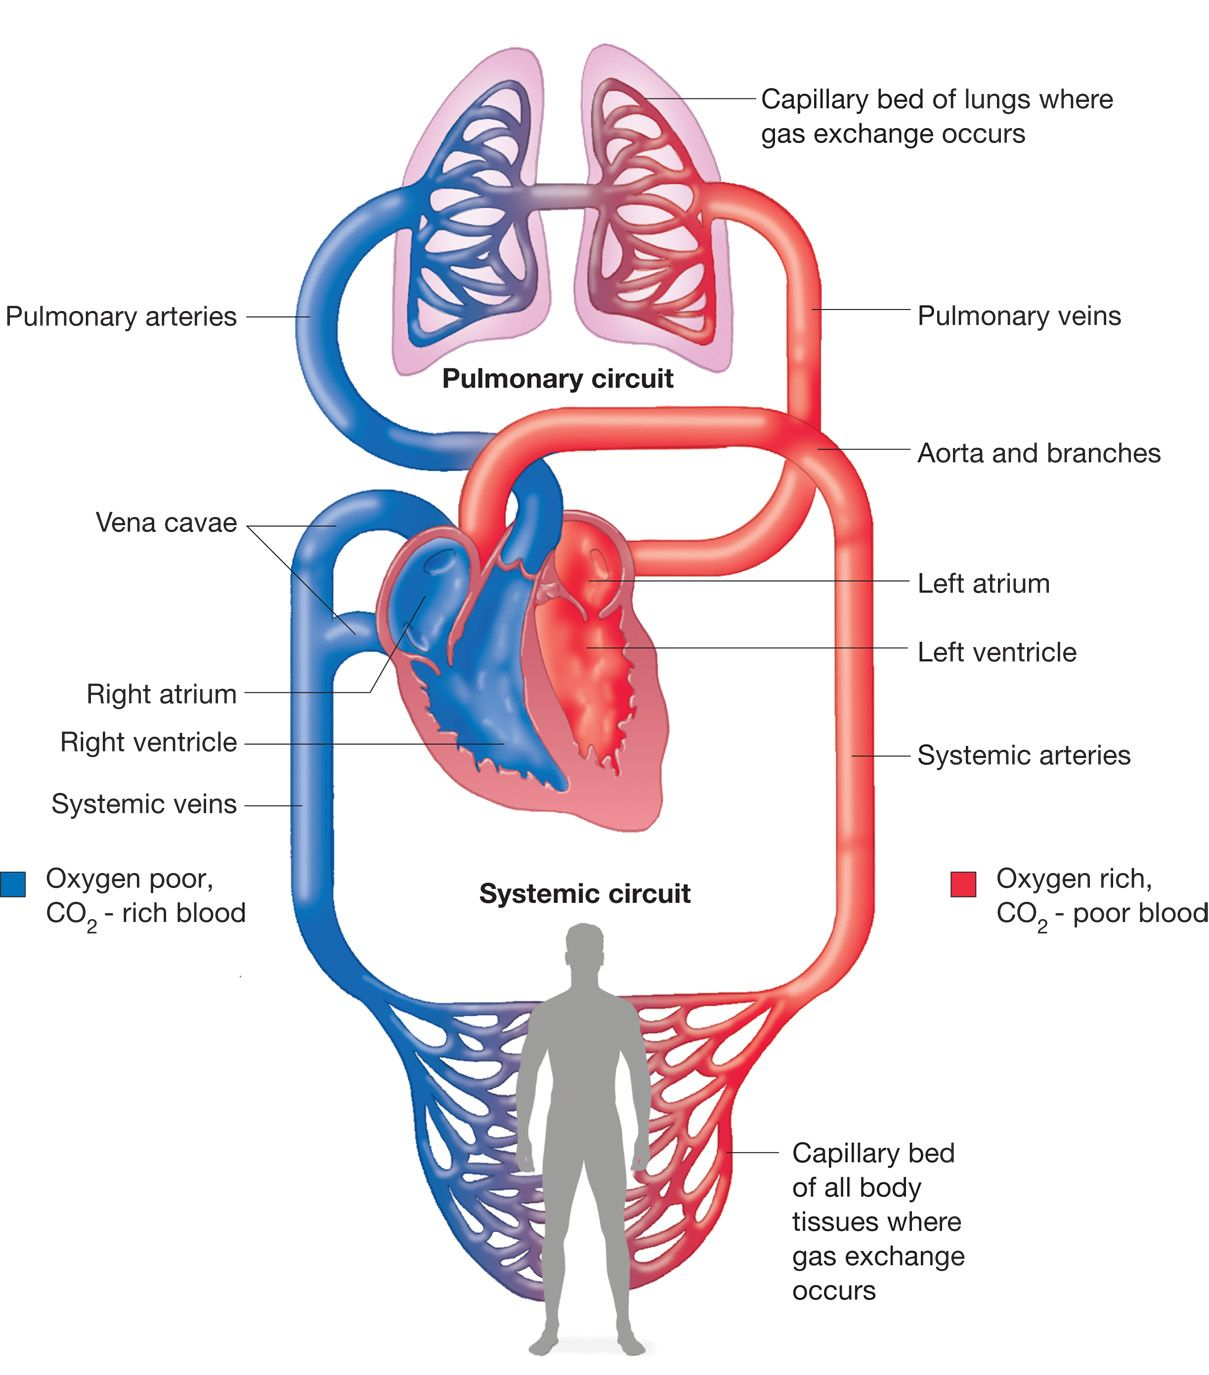 Systemic And Pulmonary Circuits